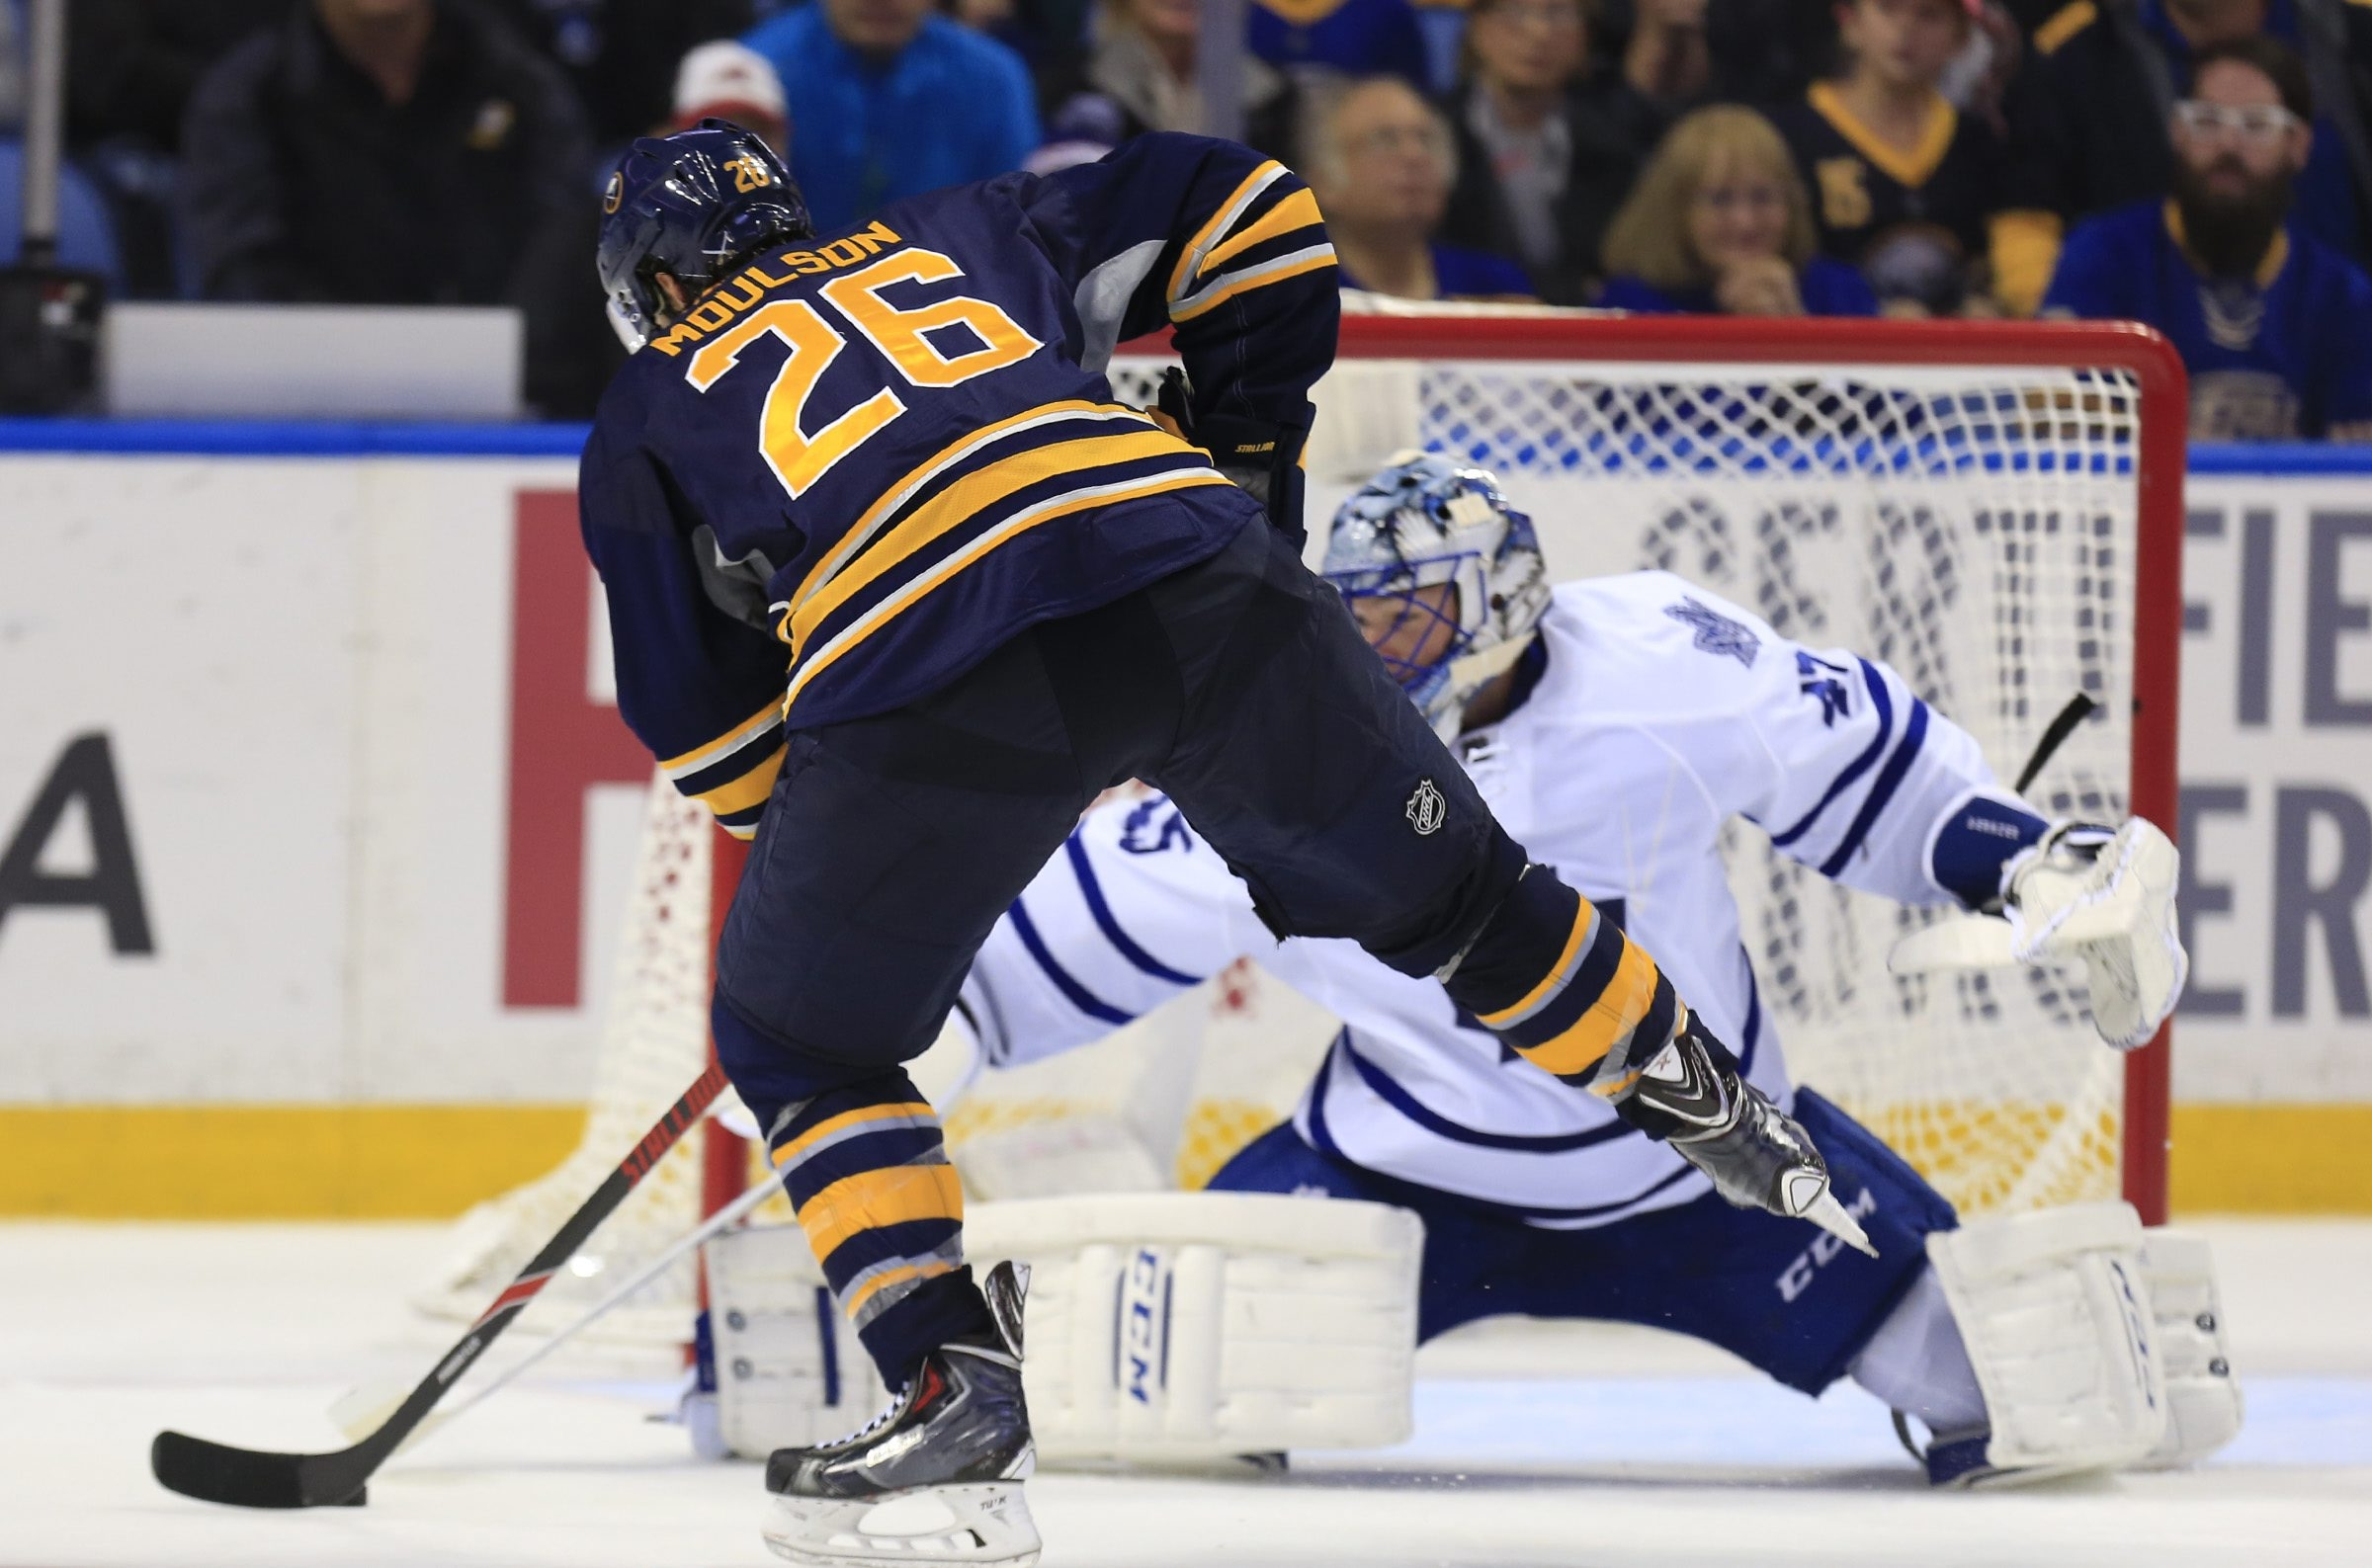 Matt Moulson scores for the Sabres in a shootout against the Toronto Maple Leafs at First Niagara Center on Wednesday.